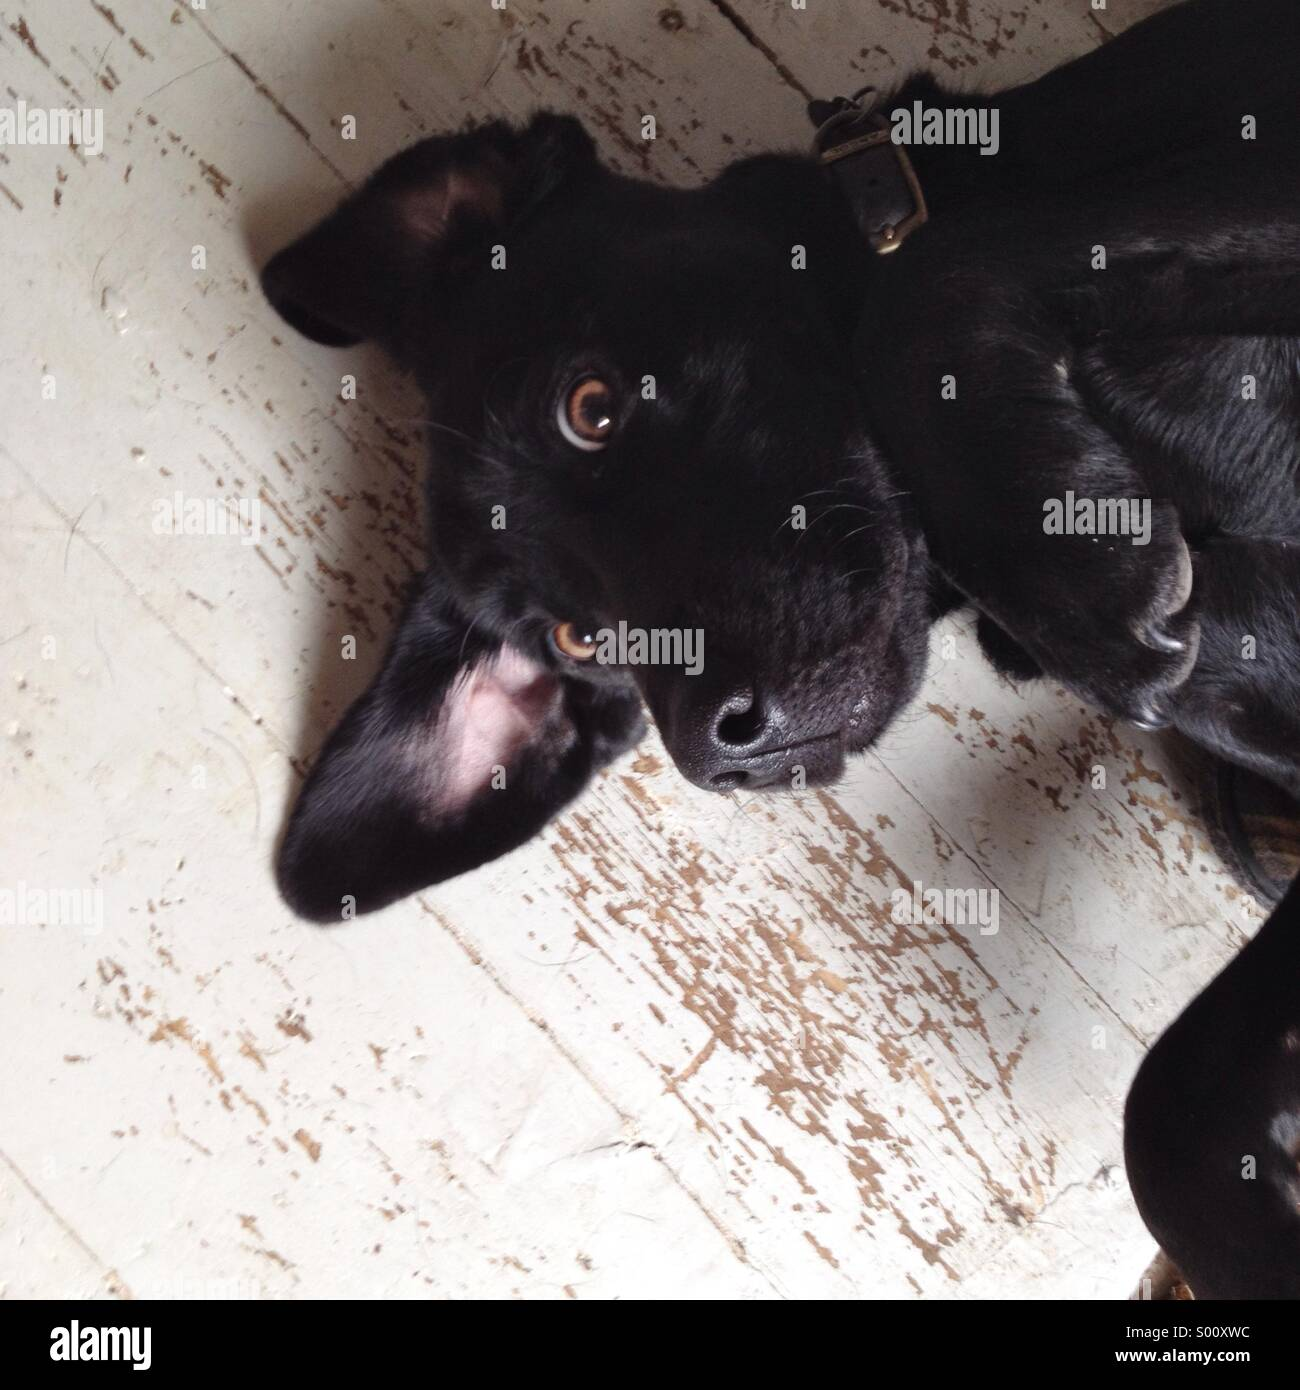 Black Labrador dog on wooden floor looking up at the camera. - Stock Image